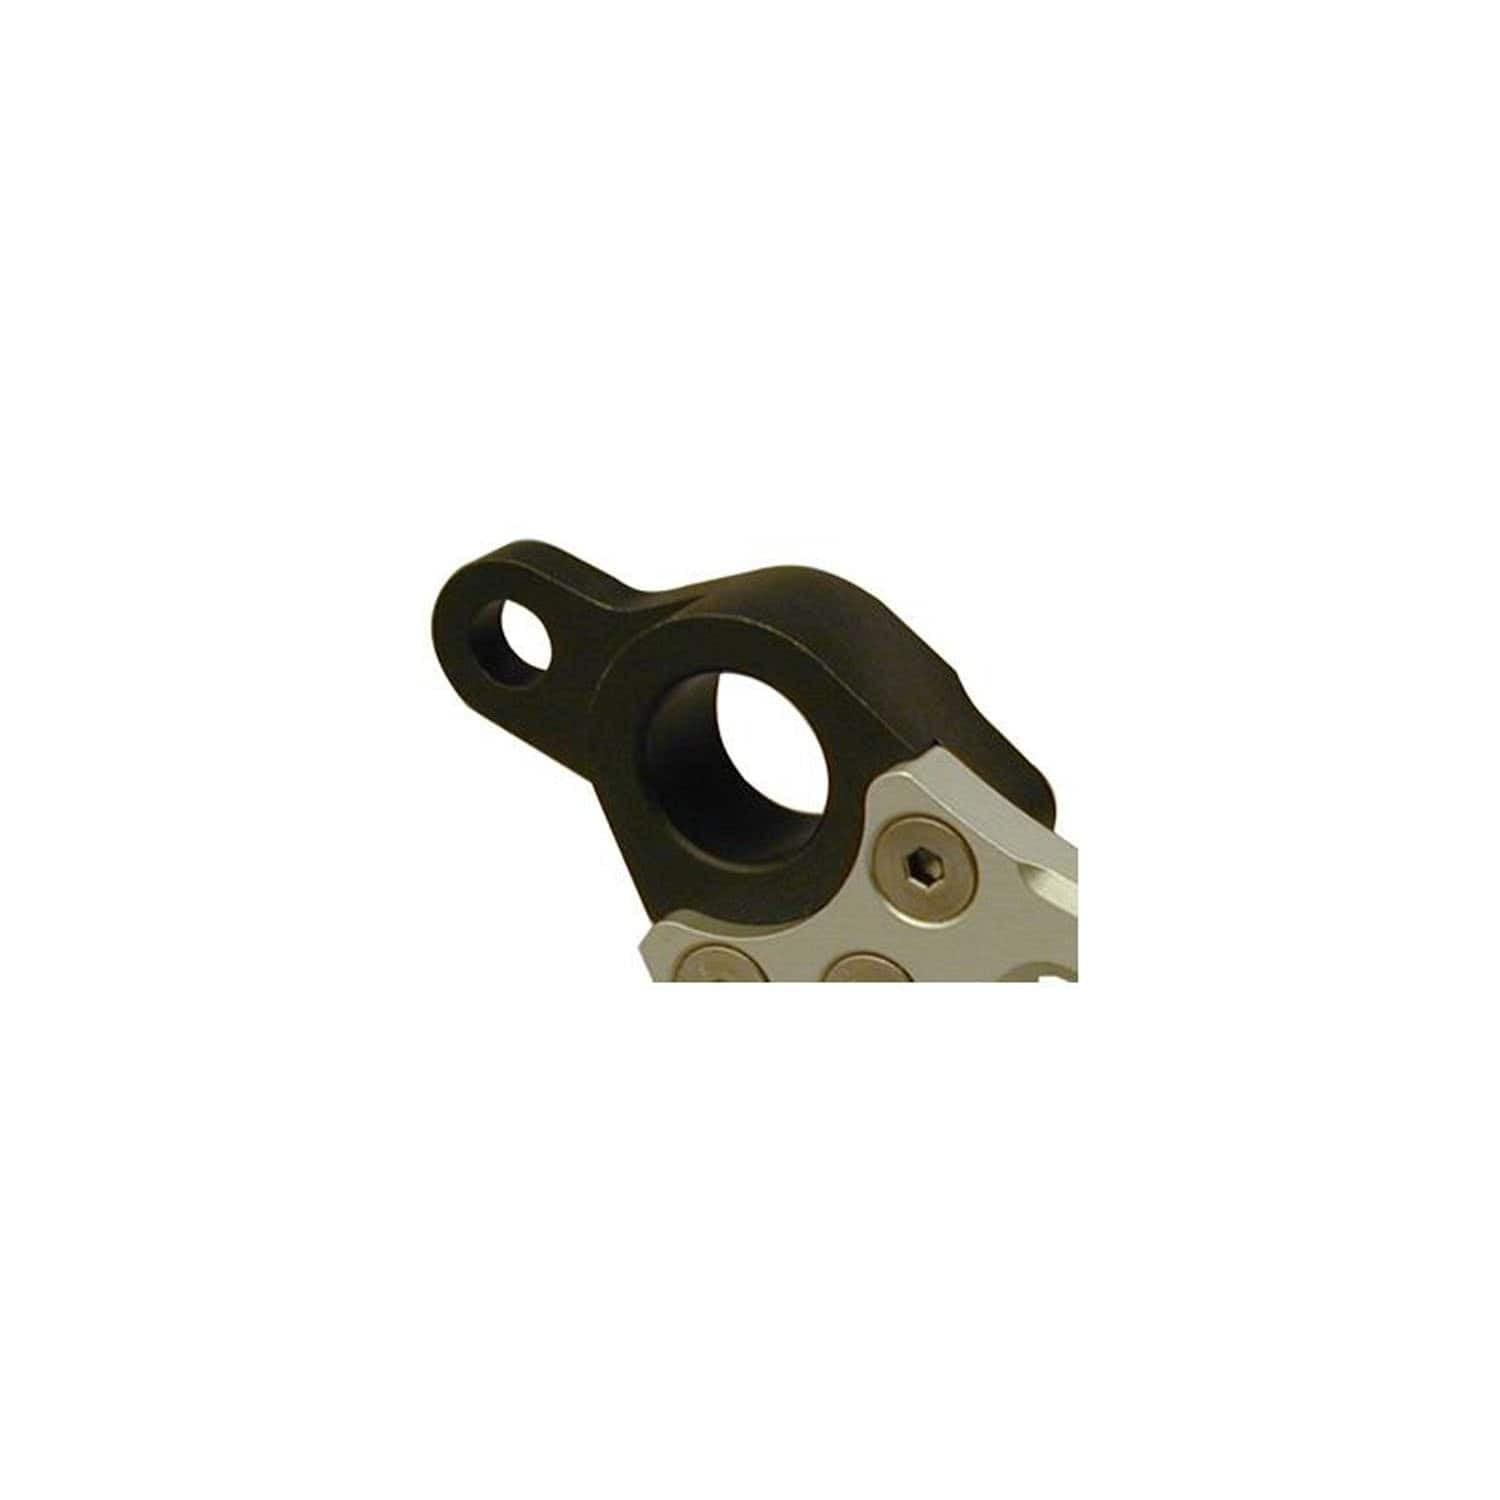 Hon CBR600RR Pivot, Brake Pedal - Woodcraft Technologies - Motorcycle Parts